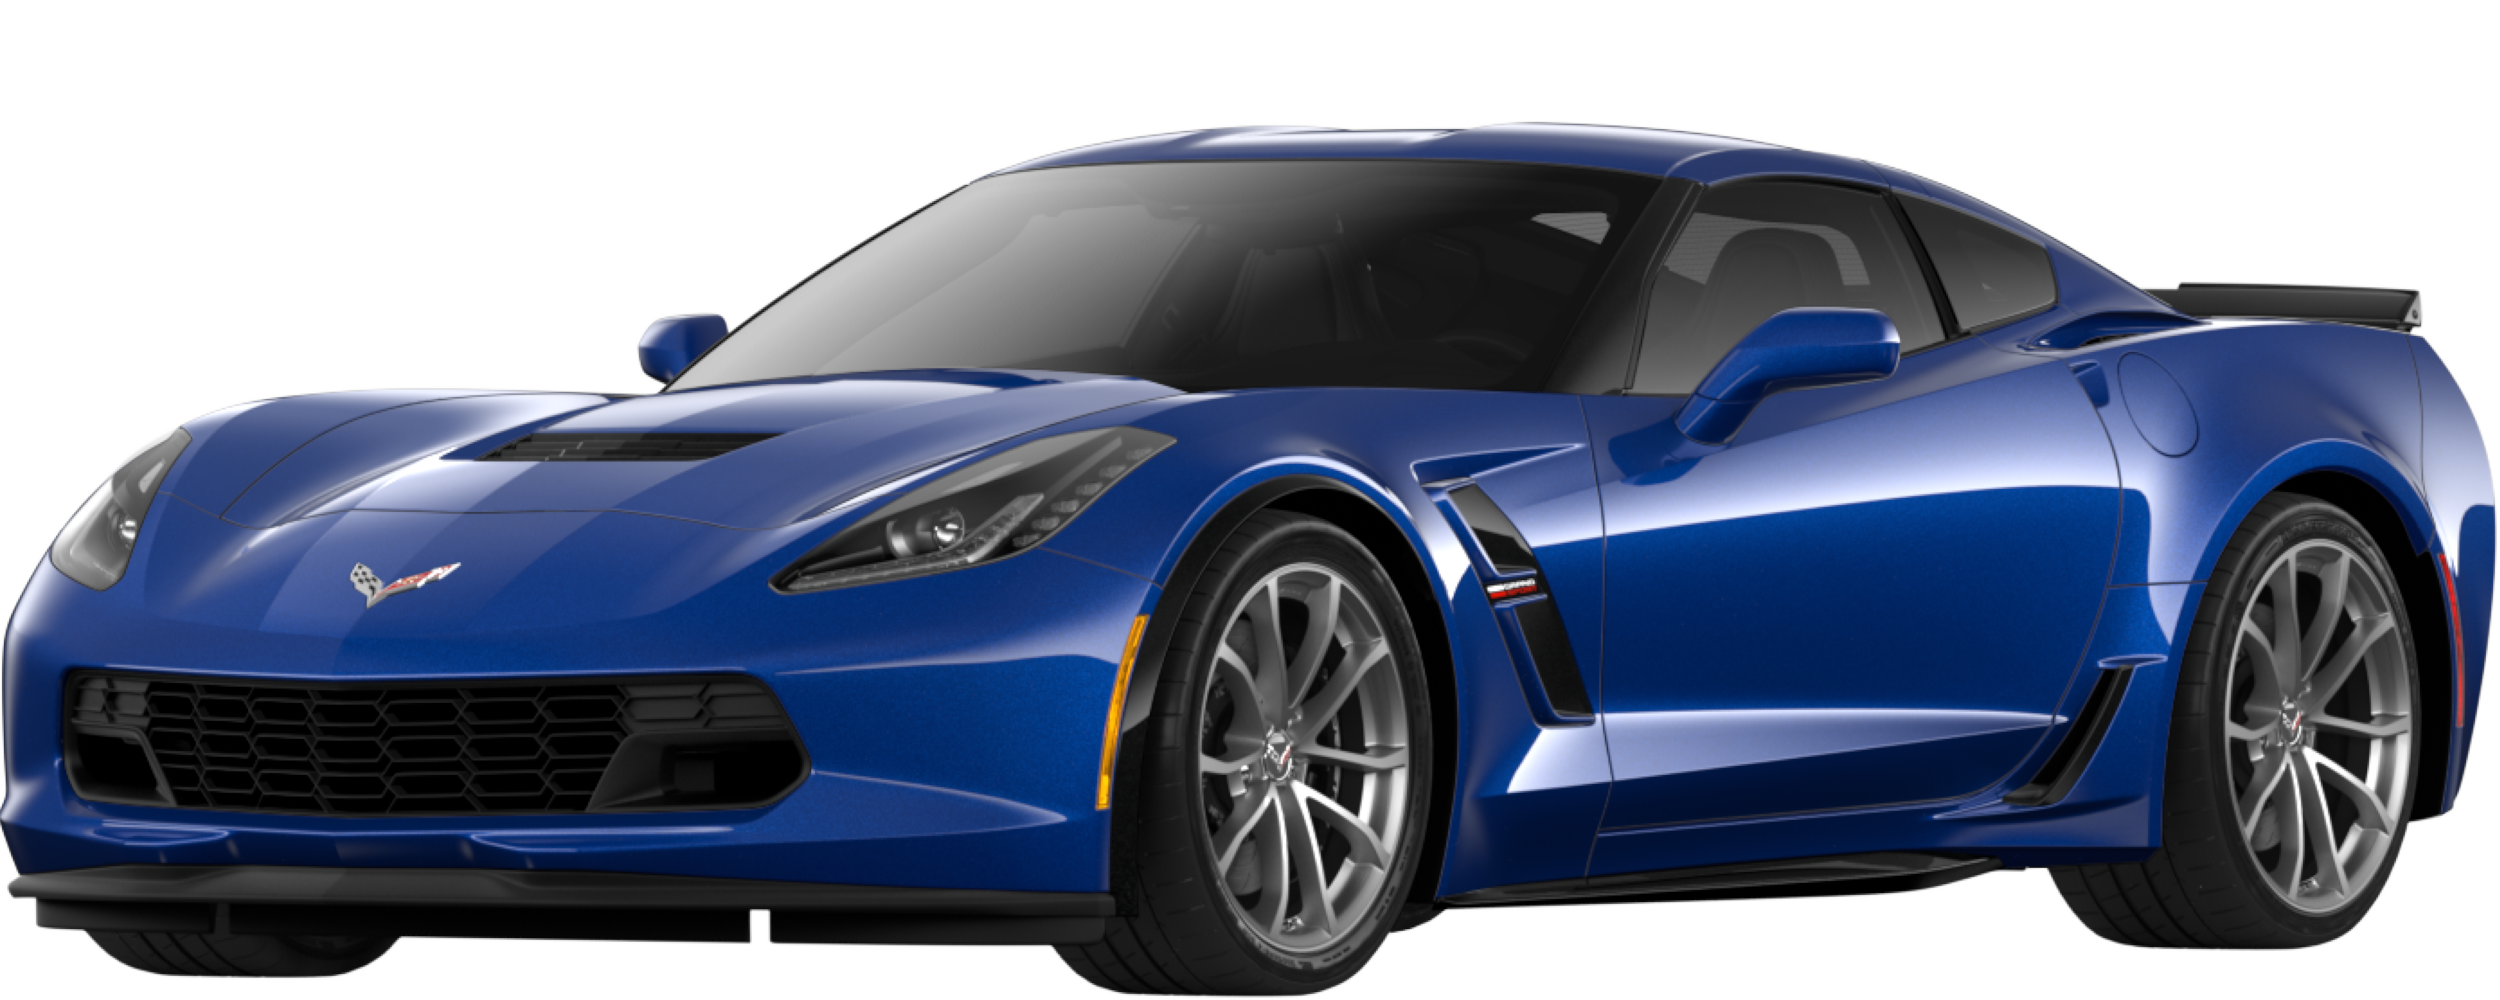 Buy or Lease a Chevy Corvette at Sonju Two Harbors in MN